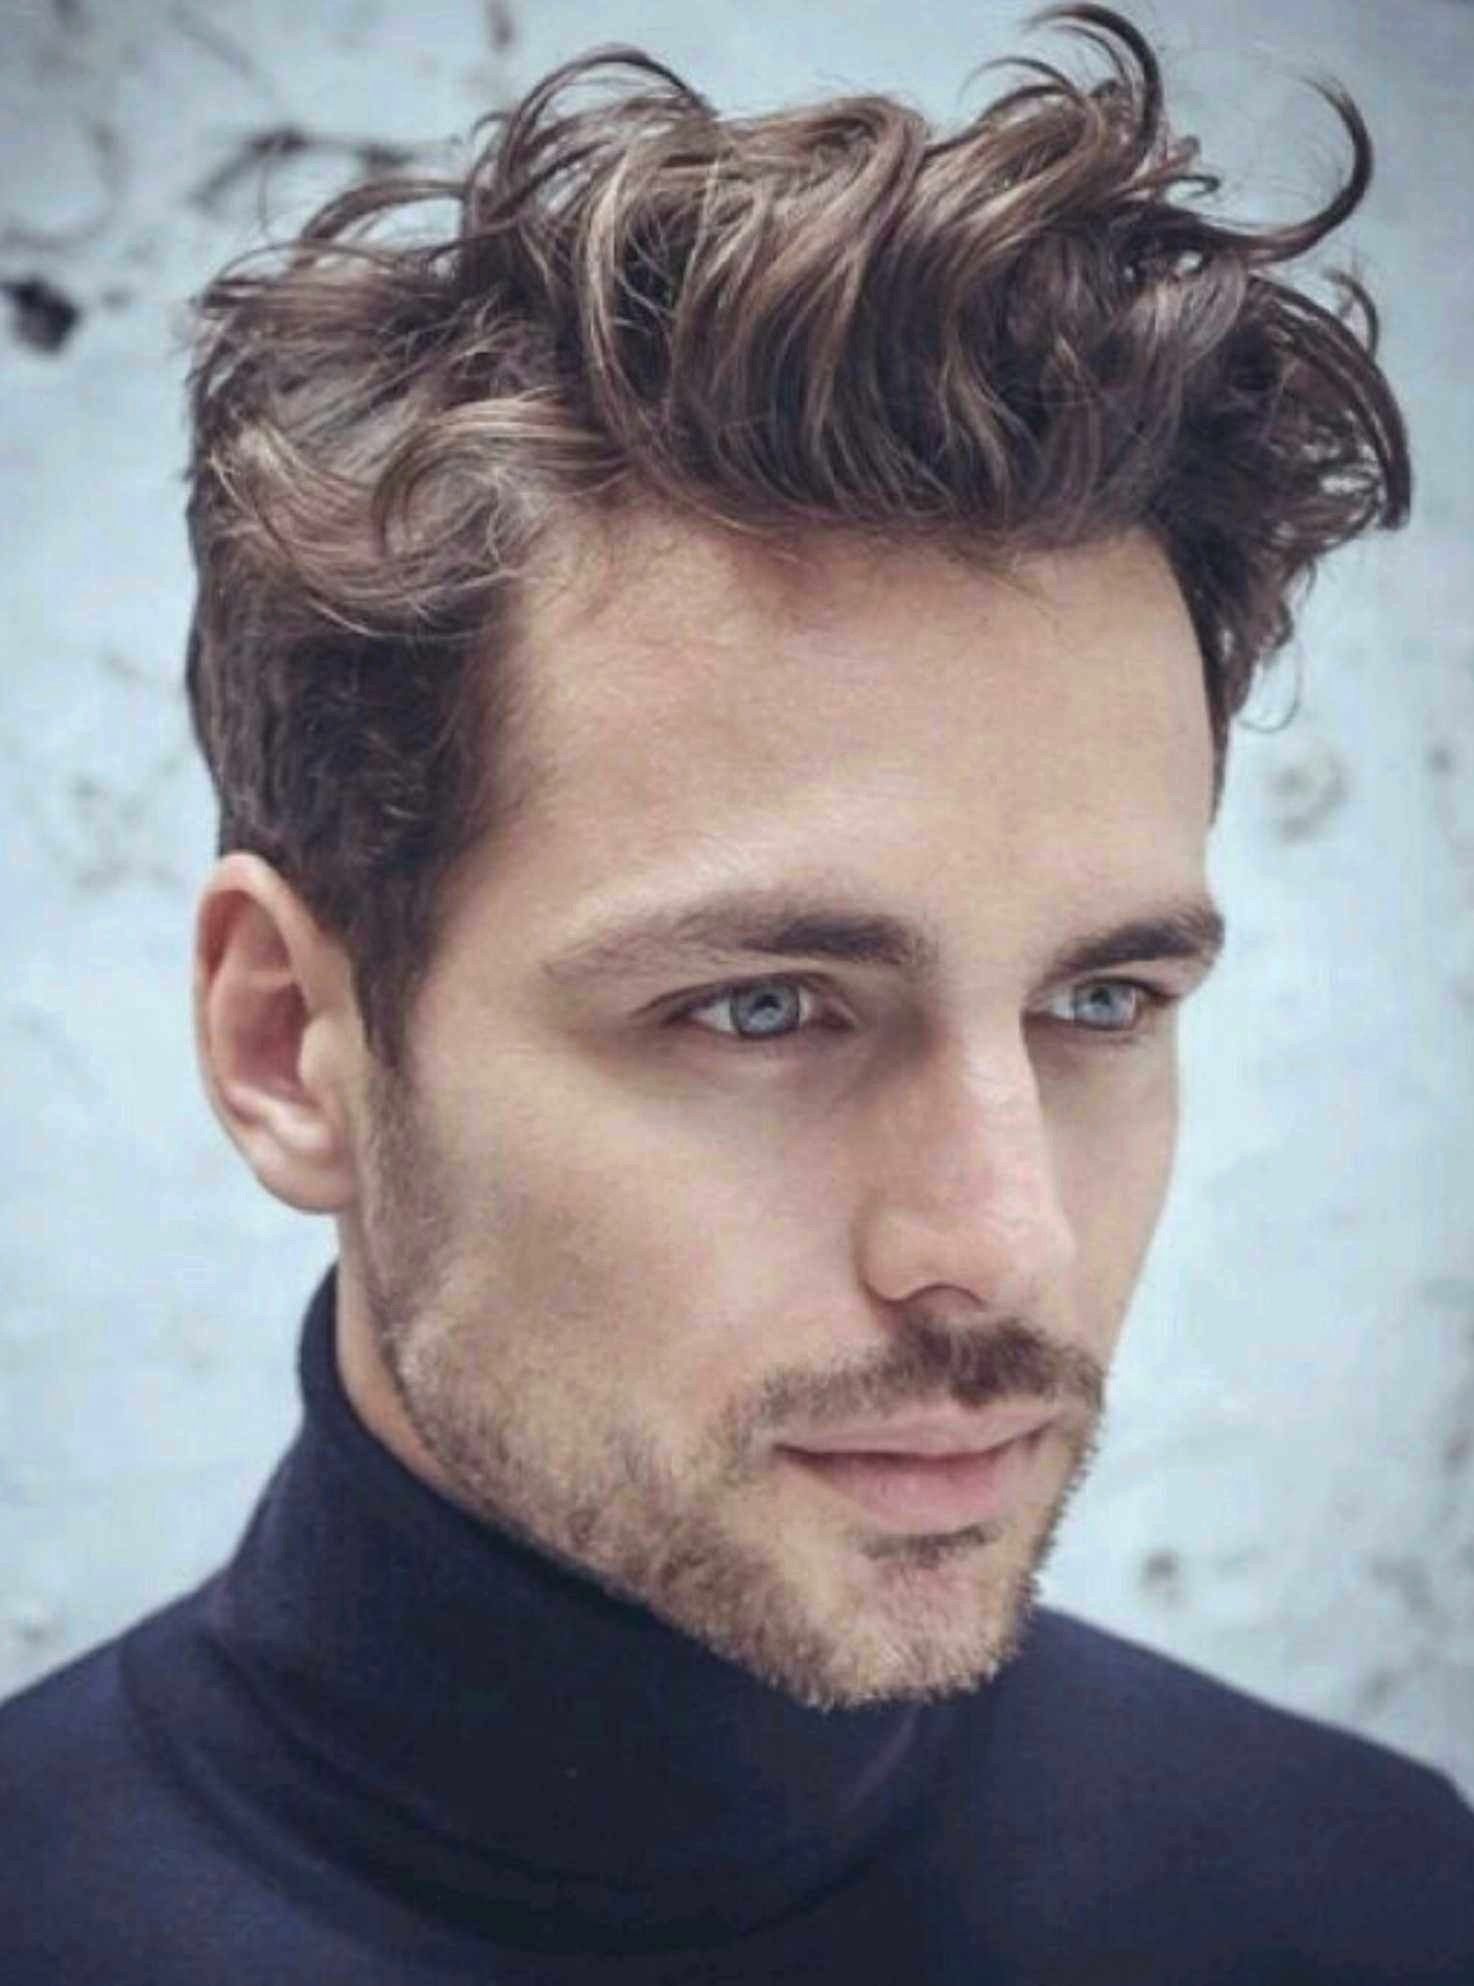 93 Inspirational Hairstyles For Thick Hair Men S In 2020 In 2020 Mens Hairstyles Medium Medium Hair Styles Oval Face Hairstyles